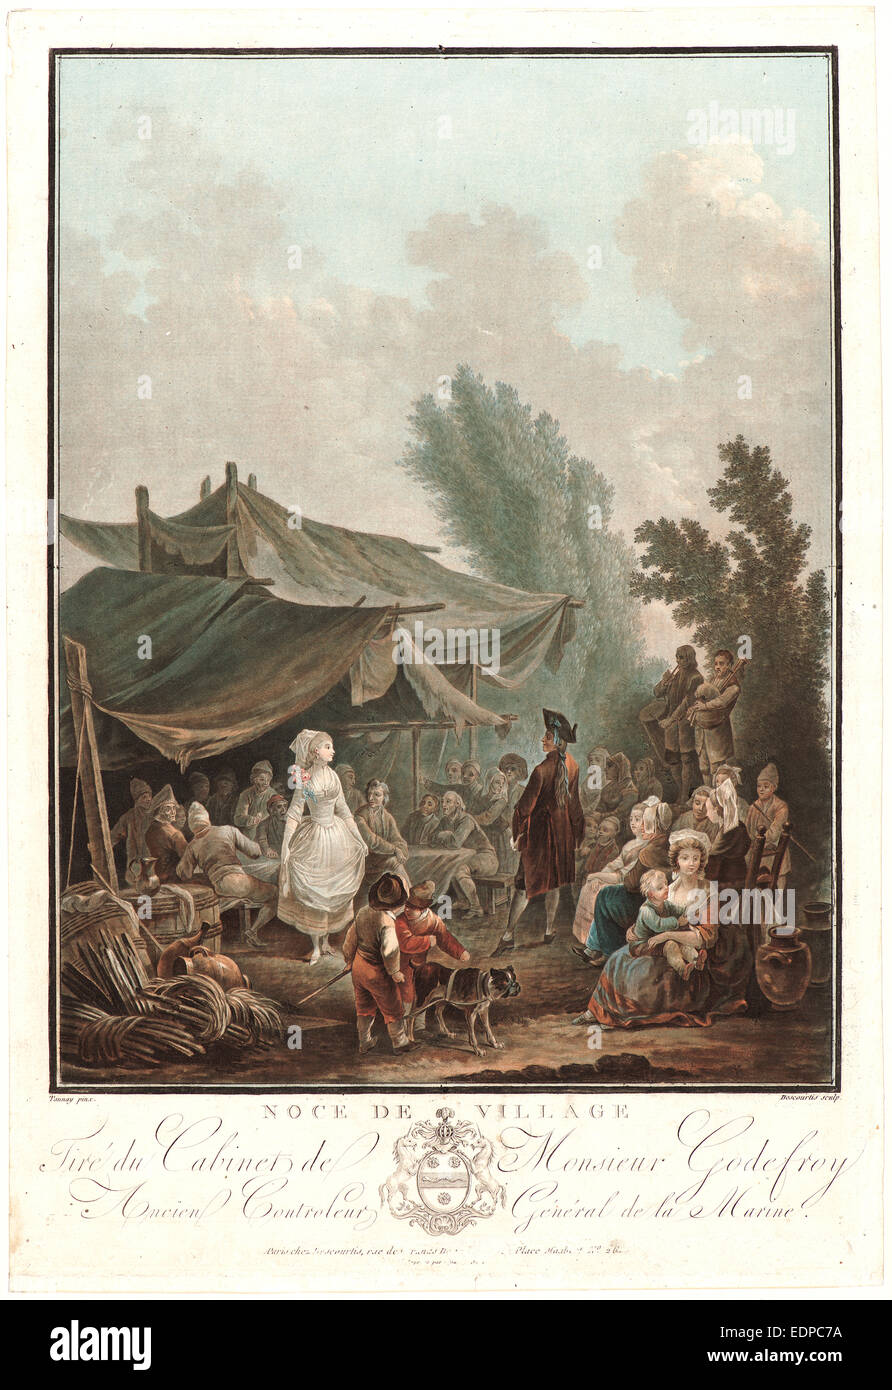 Charles-Melchior Descourtis (French, 1753-1820) after Nicolas-Antoine  Taunay (French, 1755-1830). Village Wedding